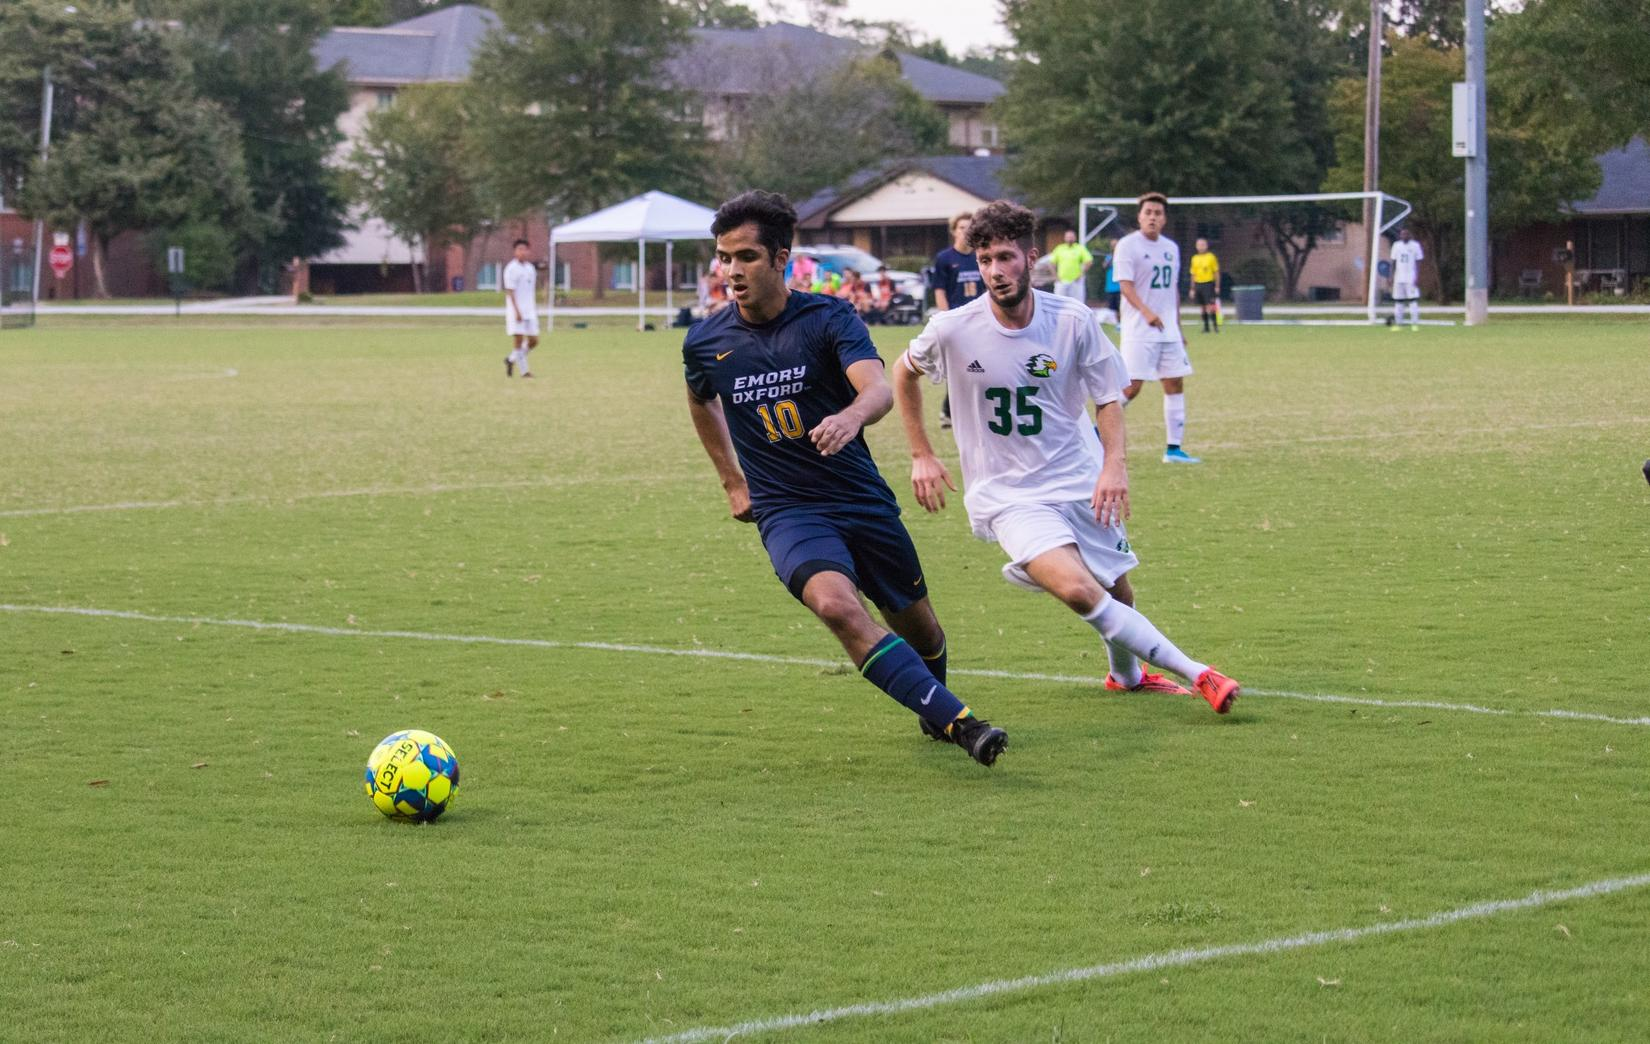 Barquet's Header Keeps the Men's Soccer Team Undefeated